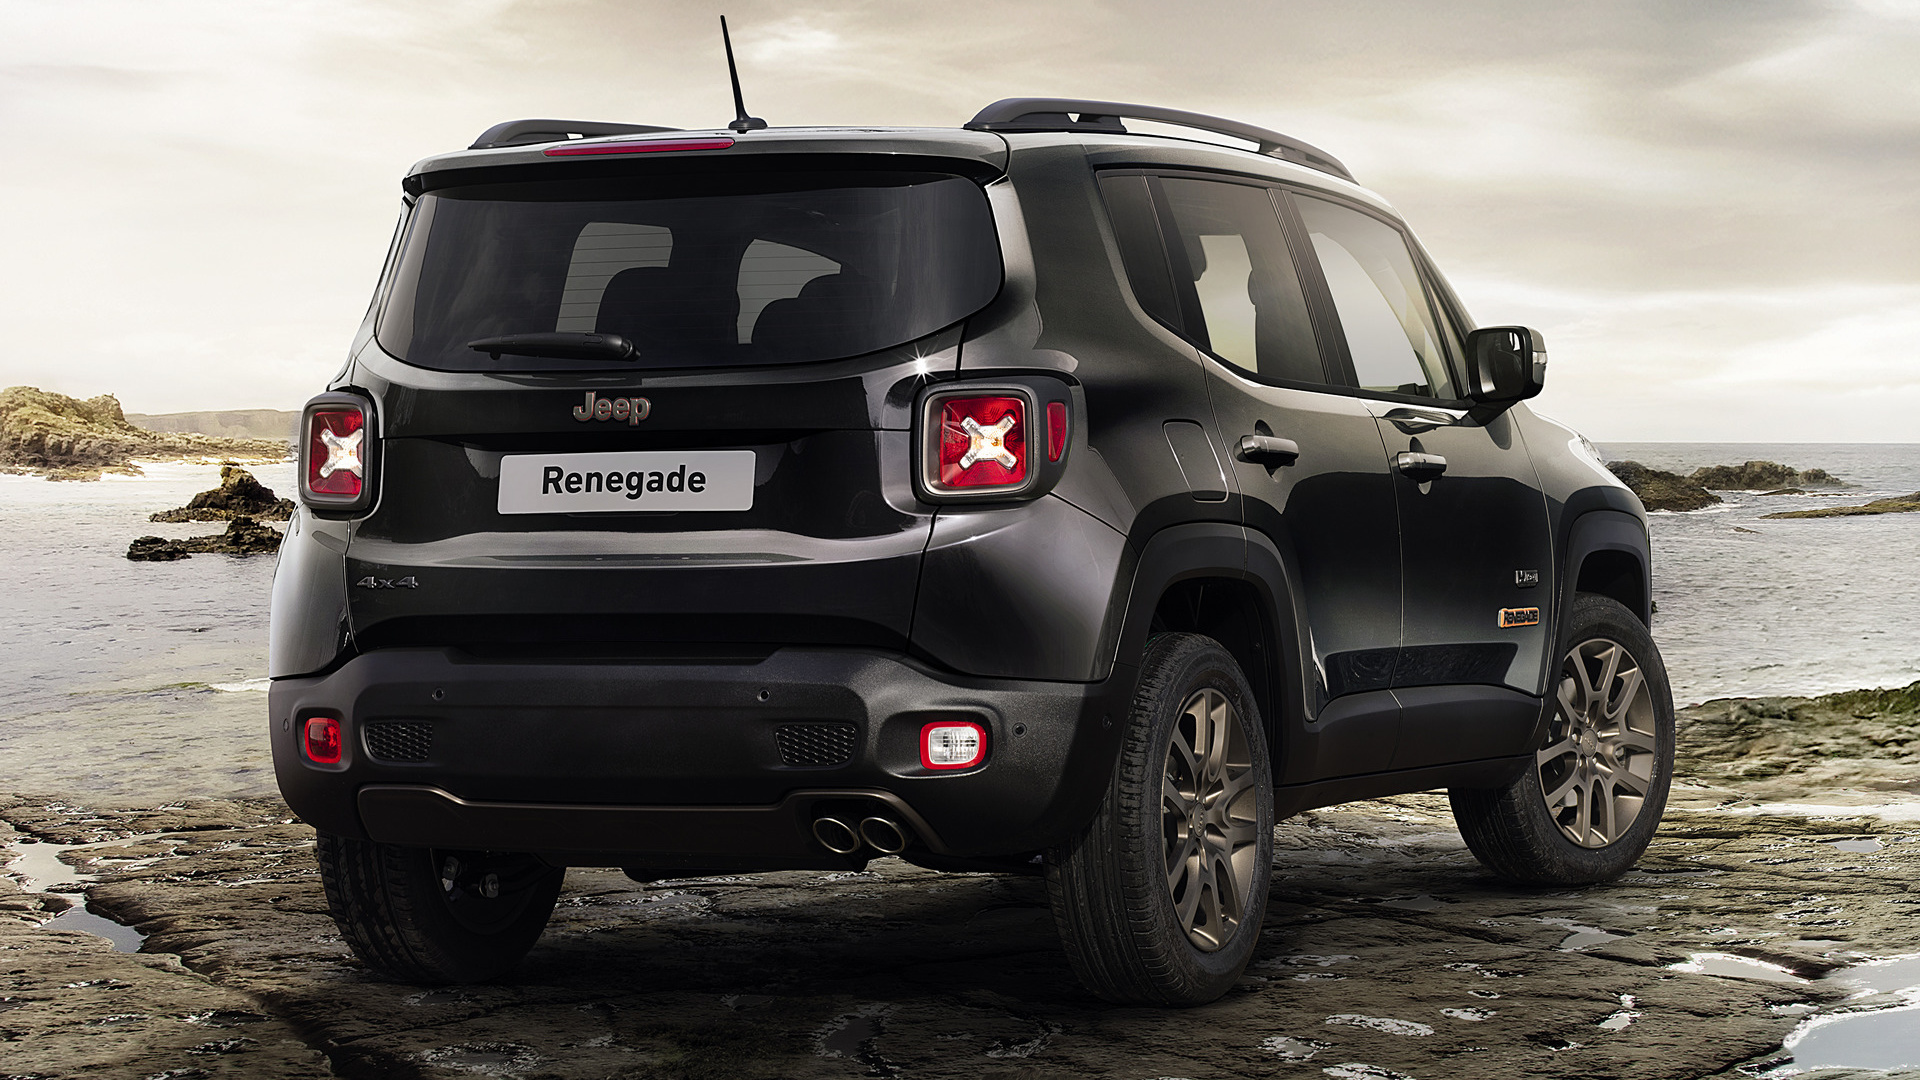 Jeep Renegade 75th Anniversary 2016 EU Wallpapers and HD ...